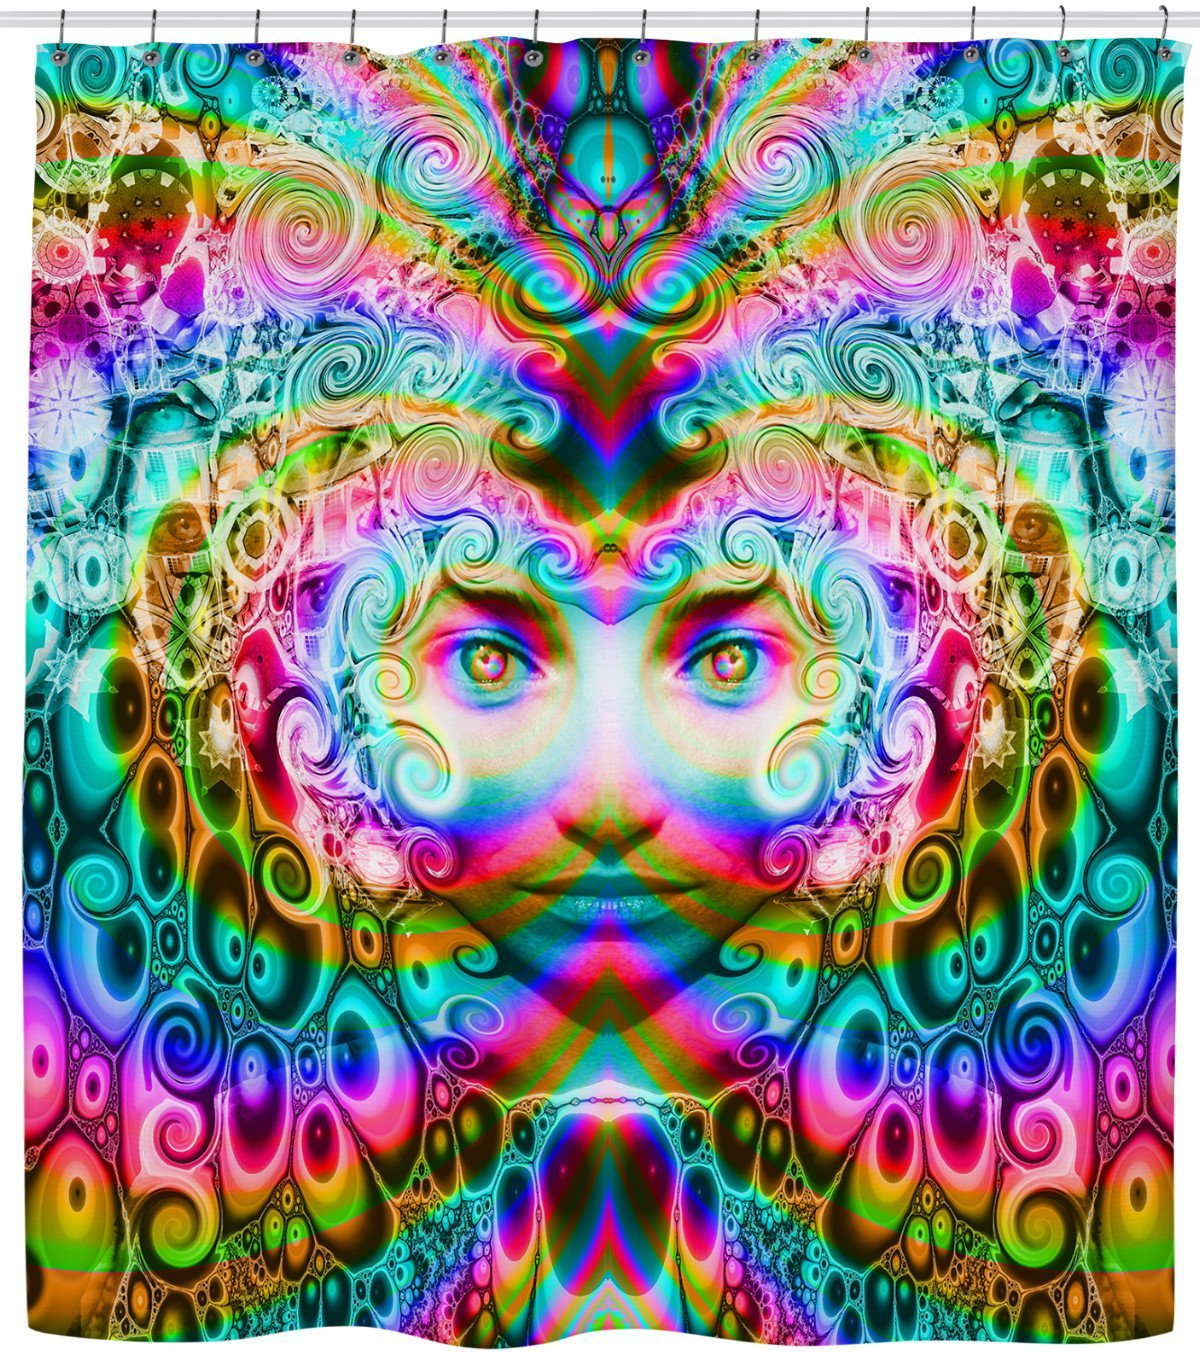 Super Trippy Awesome Energy Shower Curtain Designed By Visionary Art Master Larry Carlson This Product Is Hand Mad With Images Trippy Artwork Psychedelic Art Surreal Art